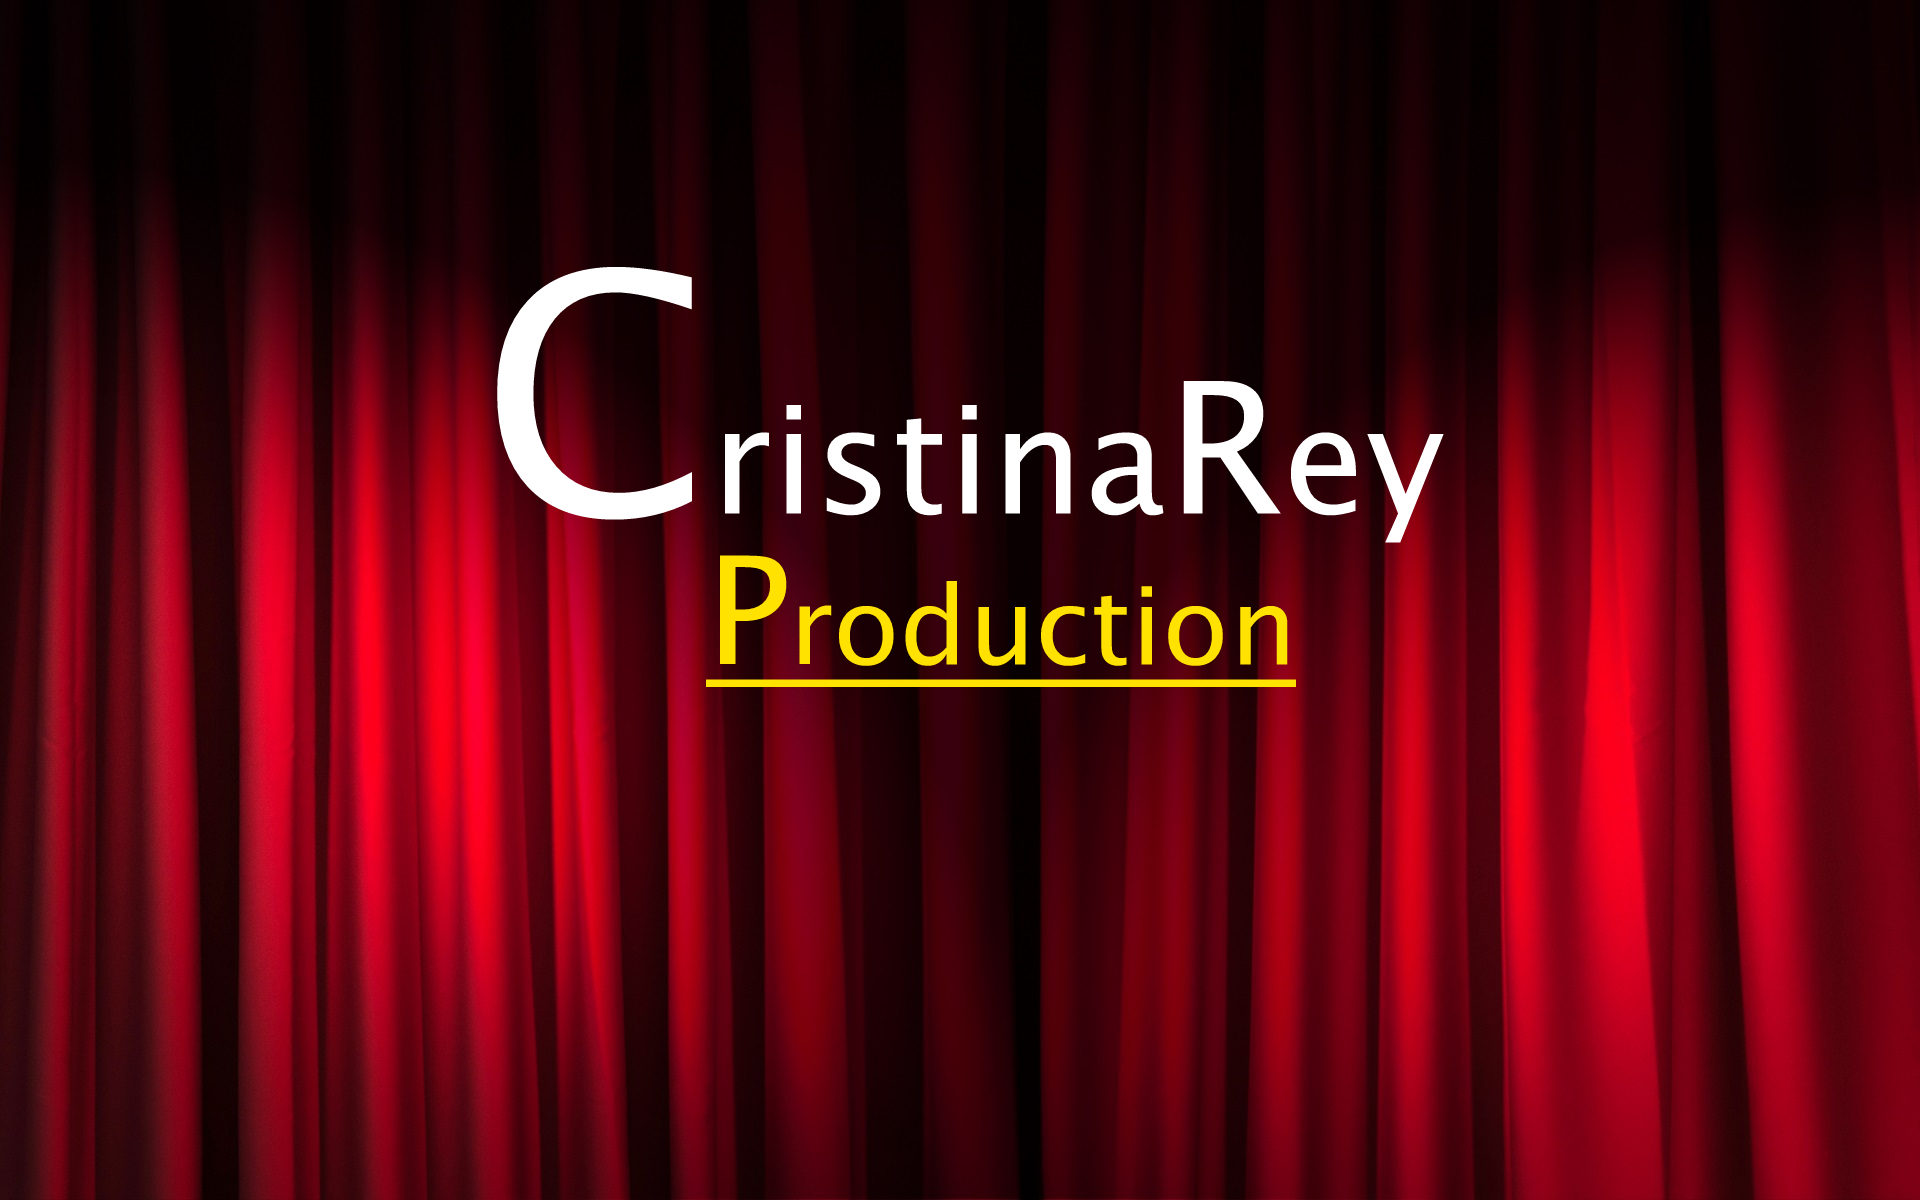 Cristinarey production